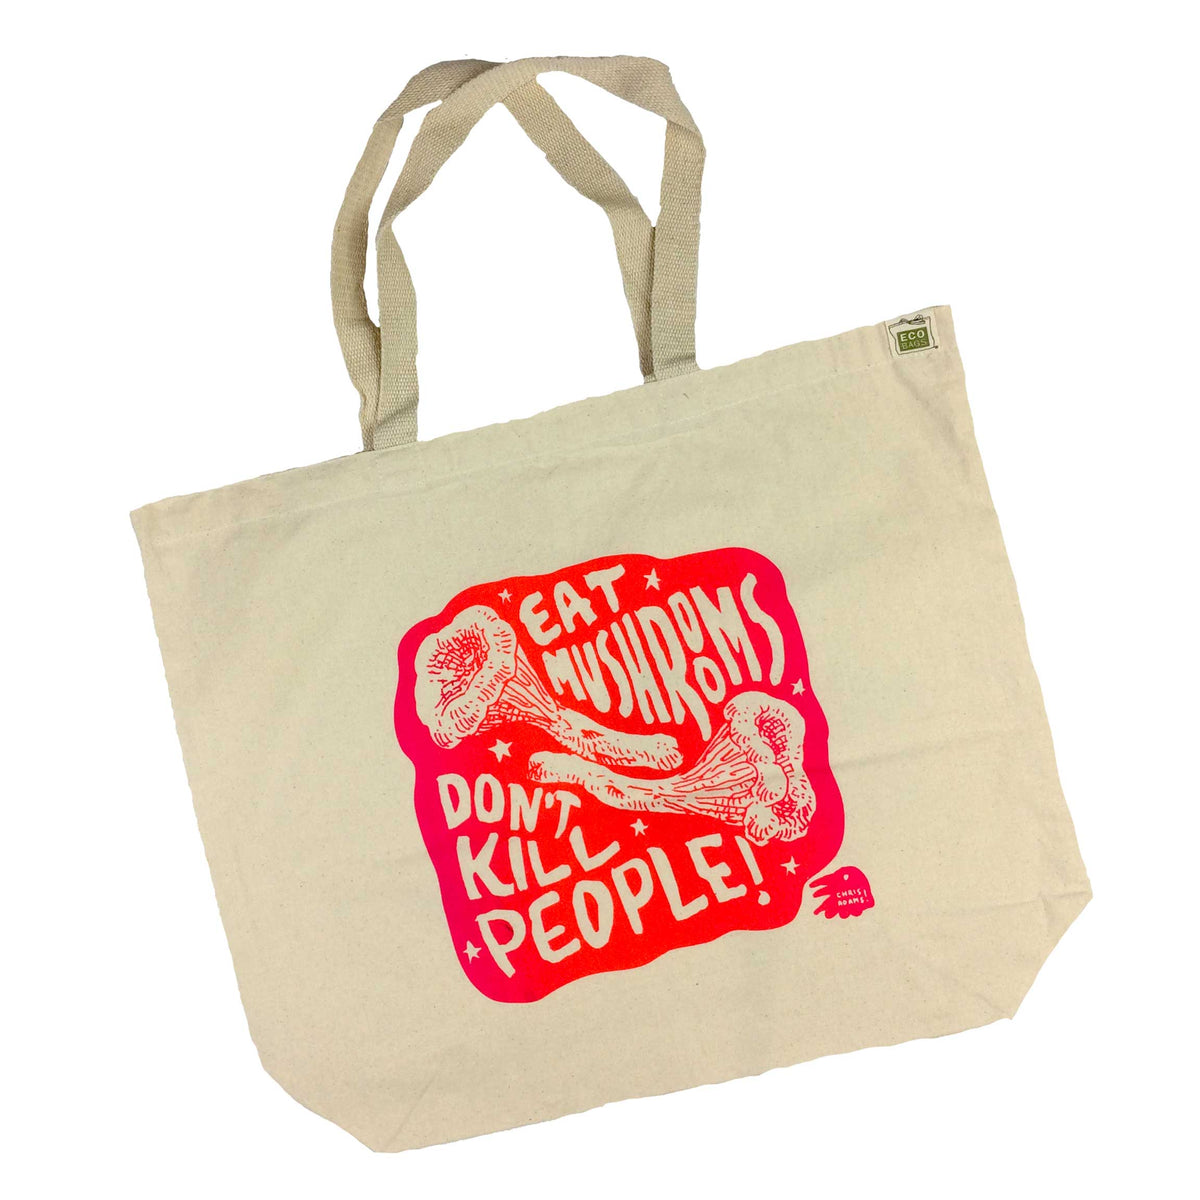 Eat Mushrooms Don't Kill People Recycled Cotton Tote